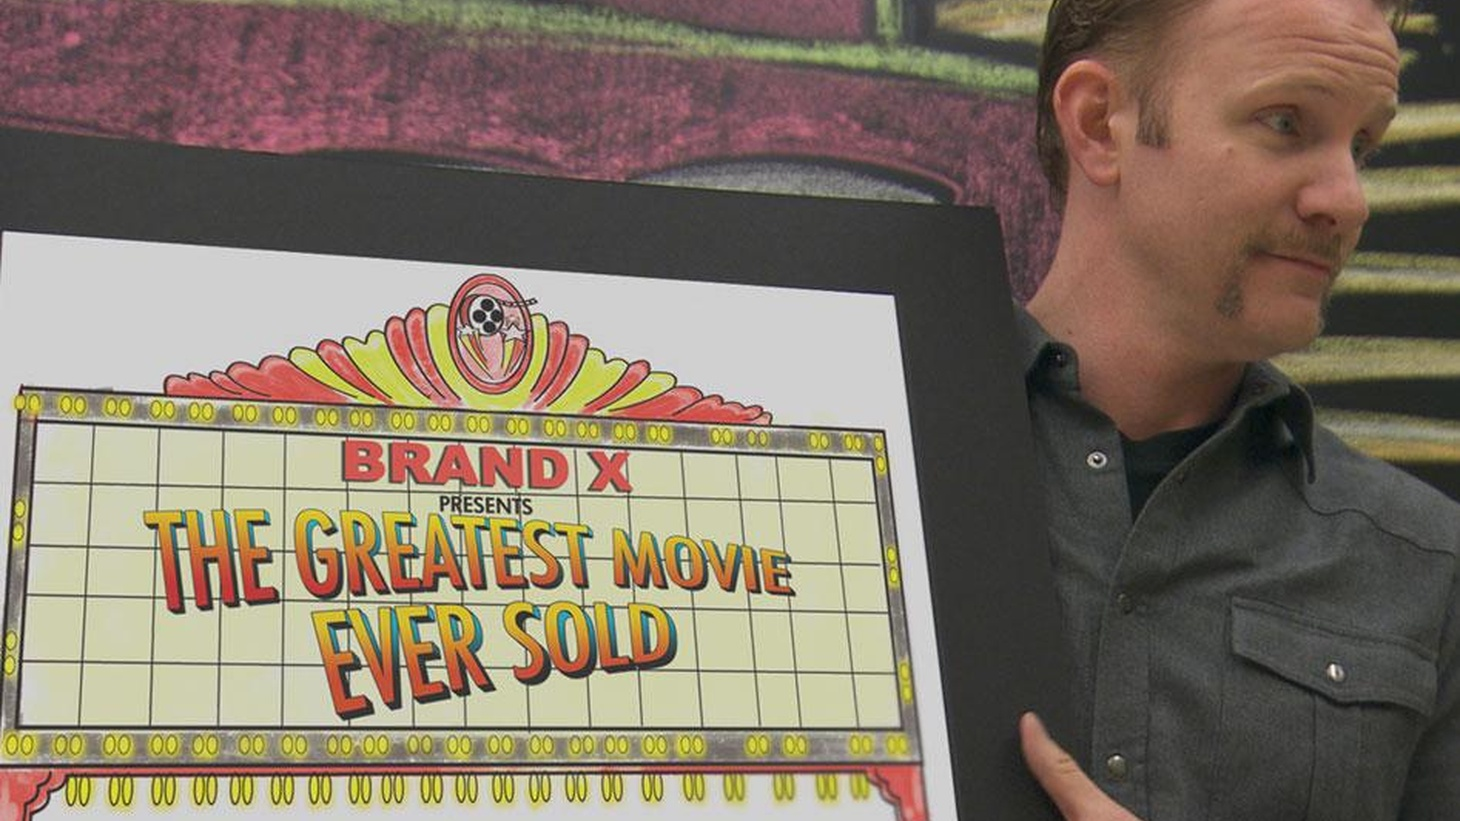 Morgan Spurlock talks about Pom Wonderful Presents: The Greatest Movie Ever Sold, which was entirely financed by brand partners doing product placement in the film.